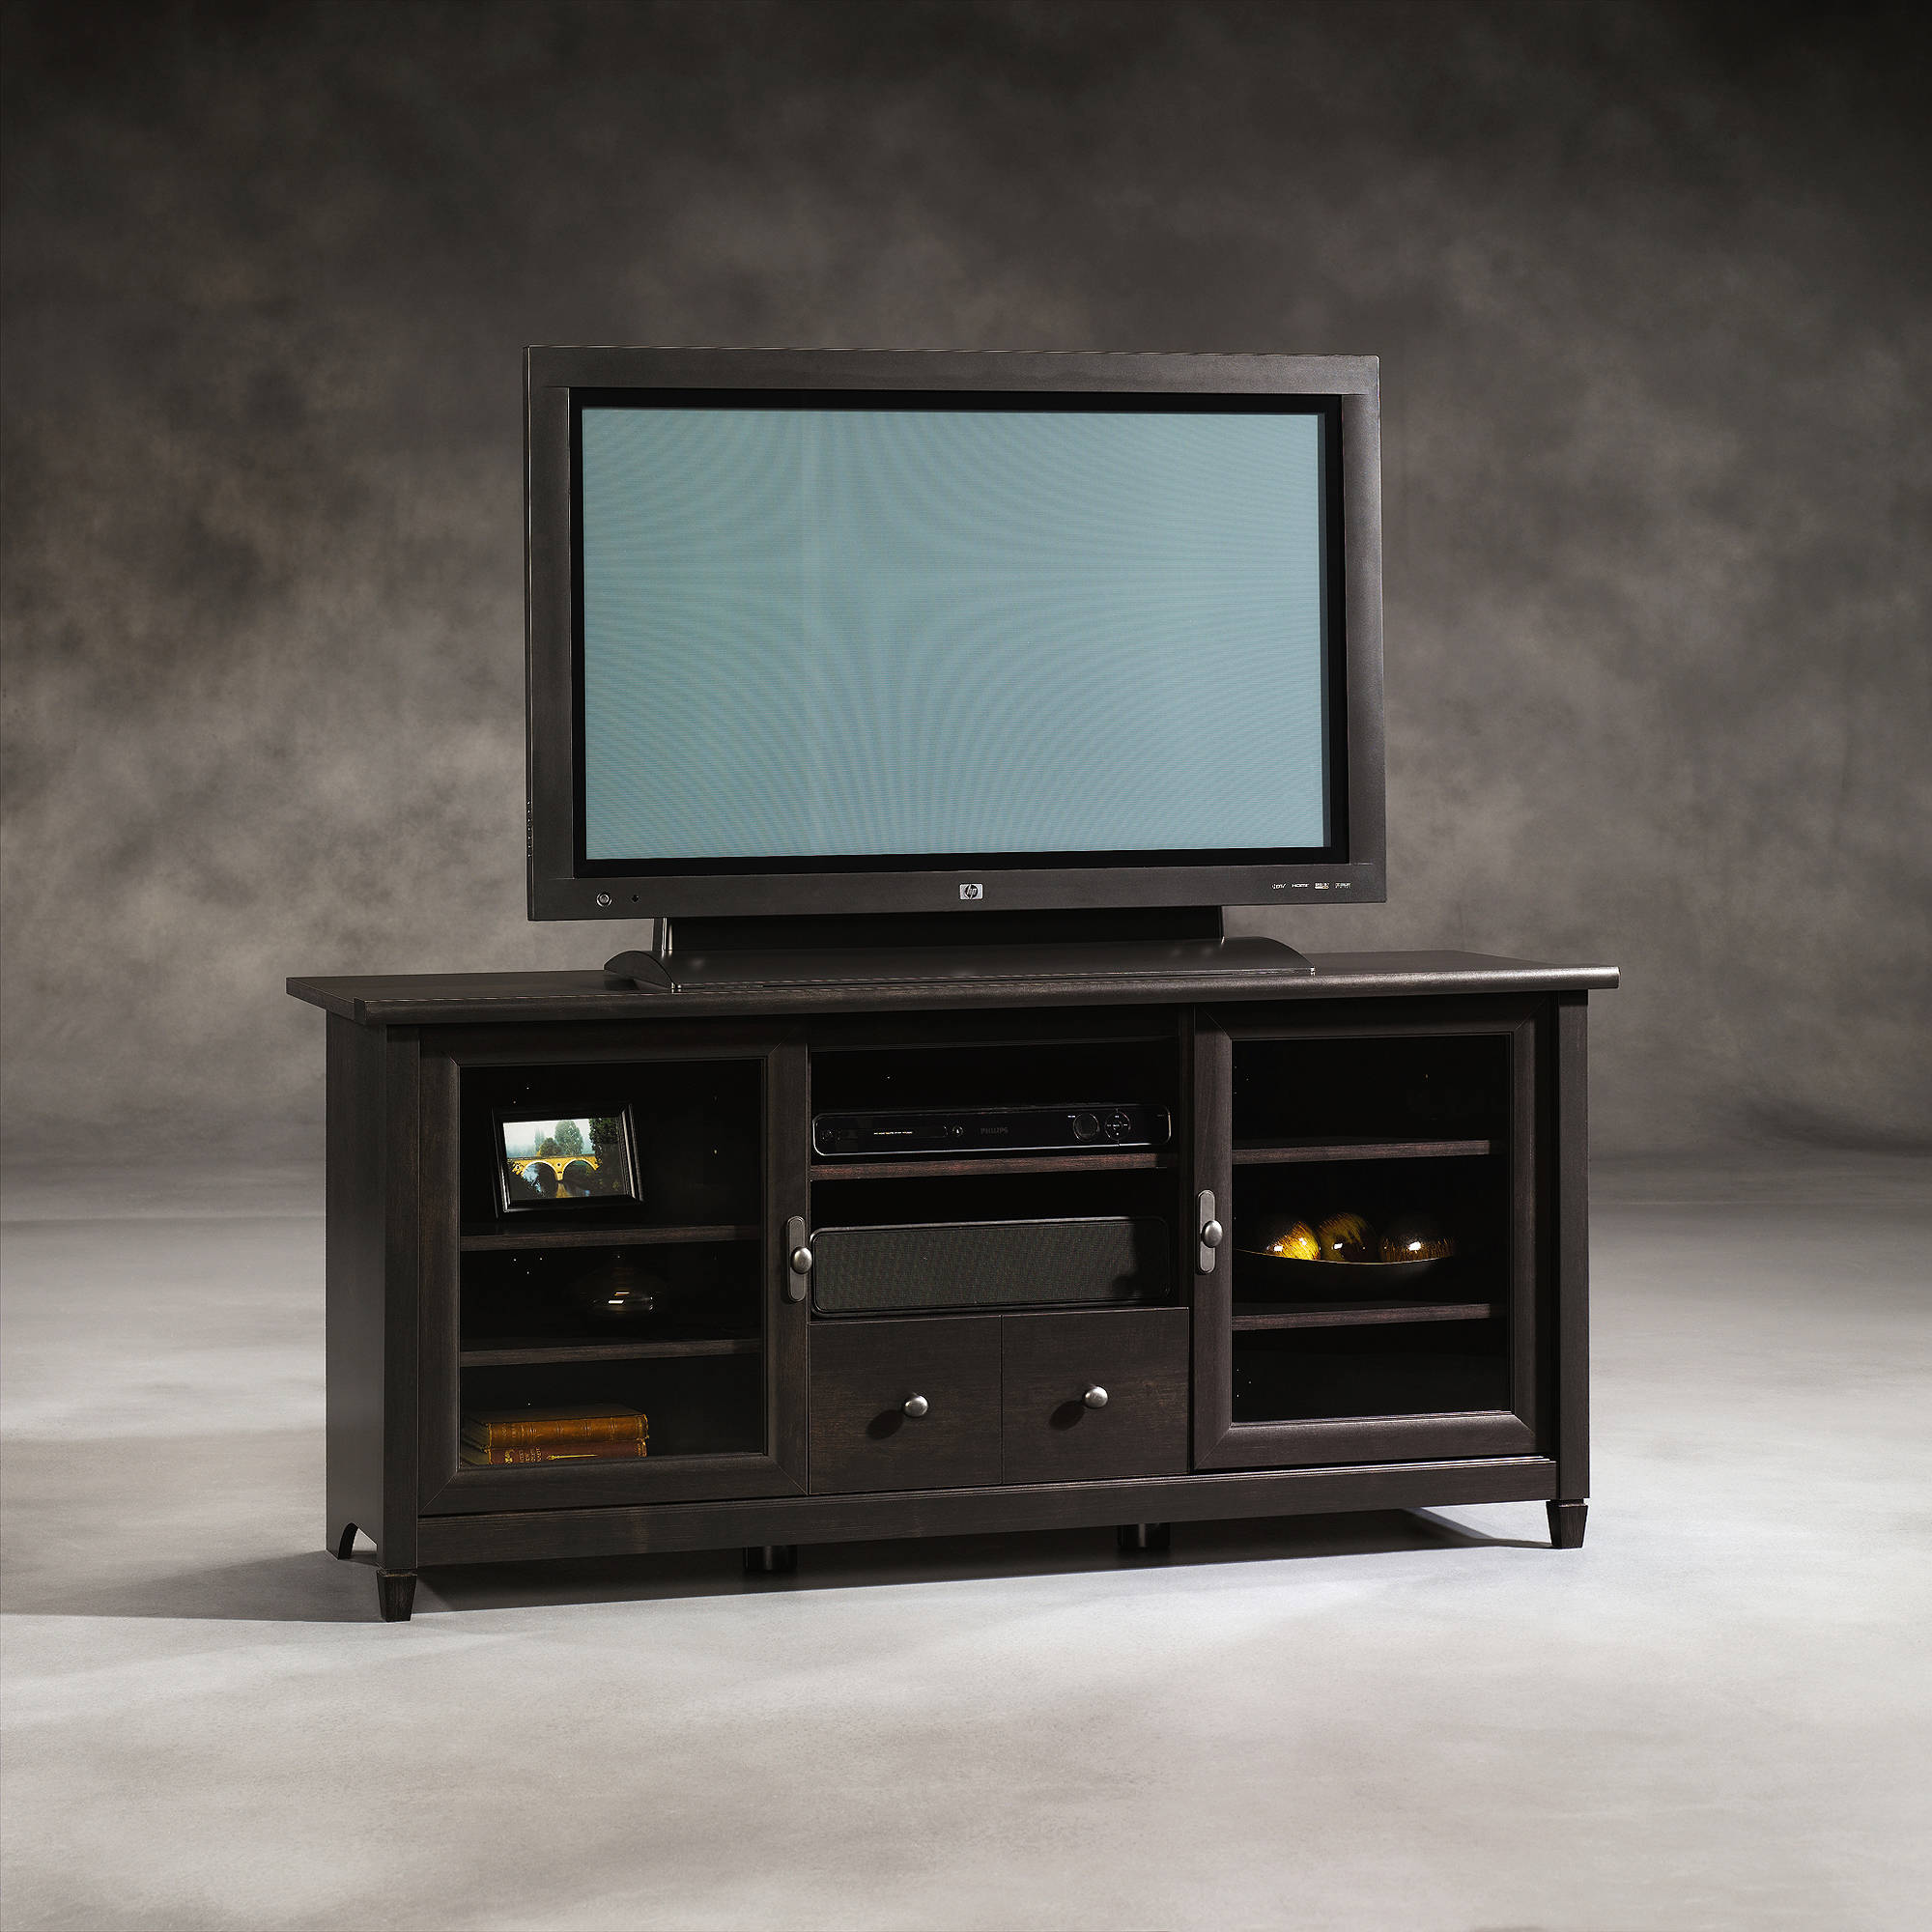 Sauder Edge Water Entertainment Credenza for TVs up to 55\ by Sauder Woodworking Co